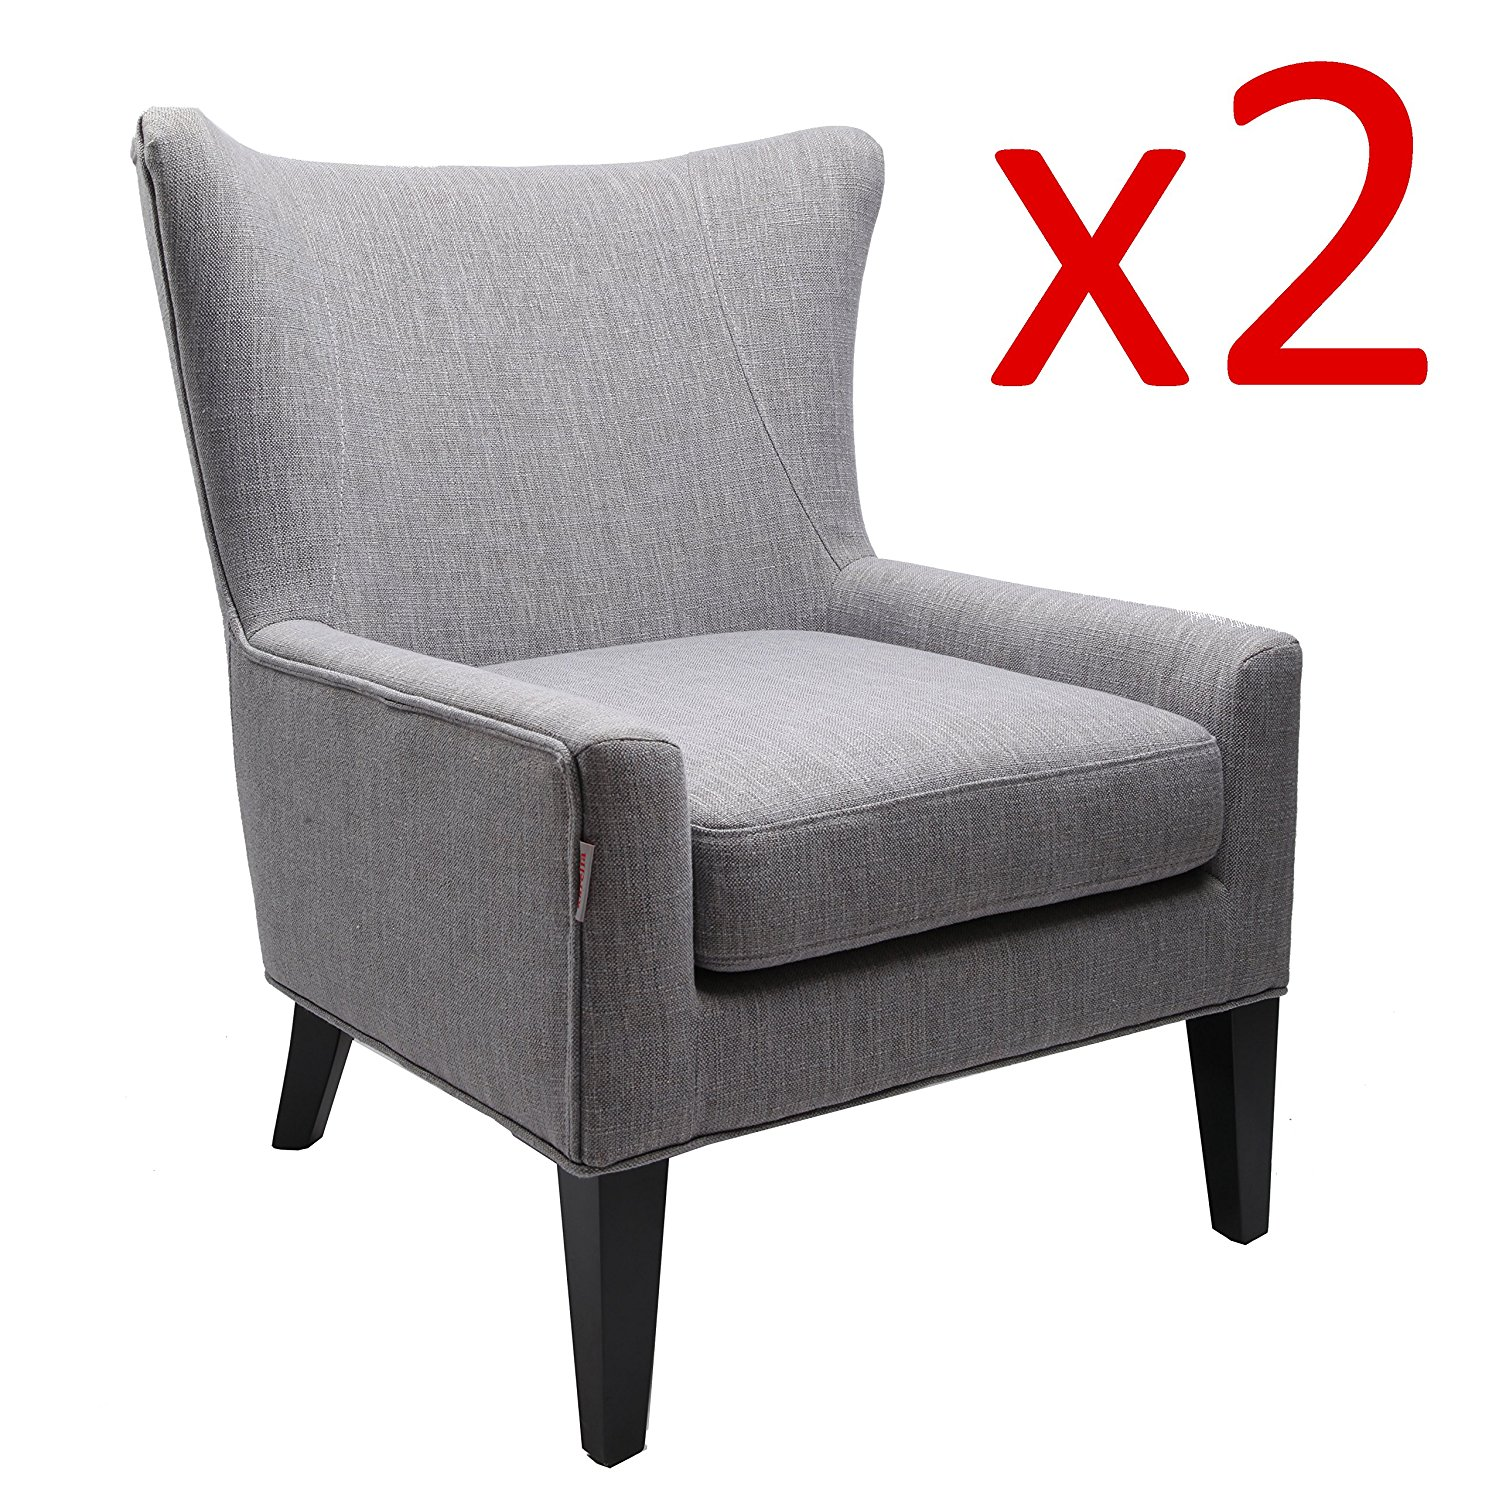 cheap modern furniture. Get Quotations · Finnkarelia Tall Wingback Fabric Accent Chair Upholstered Armchair Modern Club Sofa Contemporary Living Room Bedroom Seat Cheap Furniture S